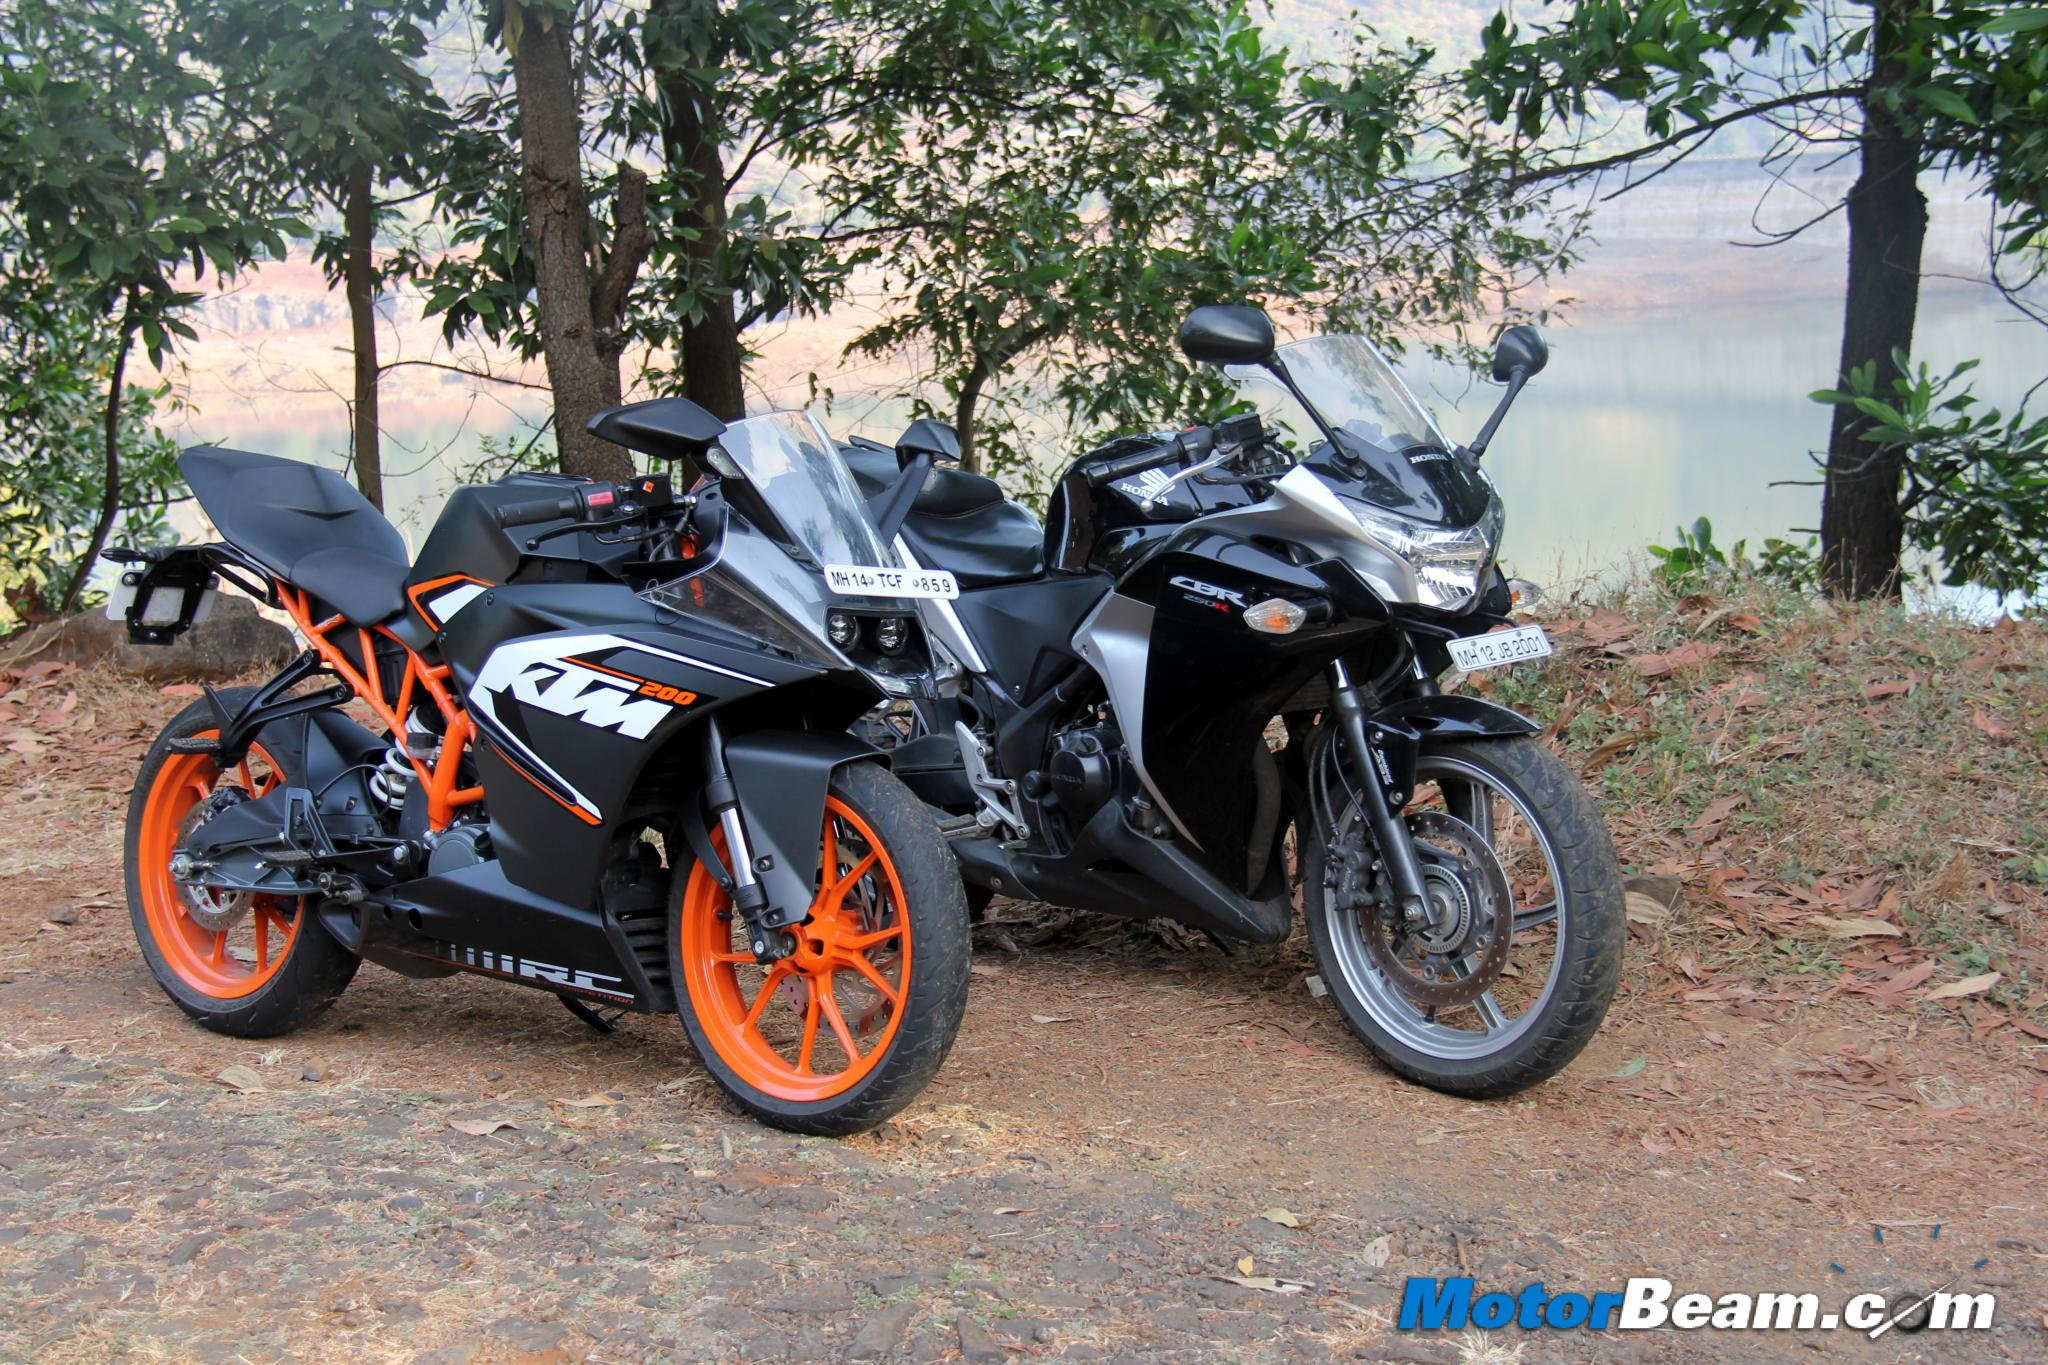 Honda Cbr250r India Review Price And Specifications ...